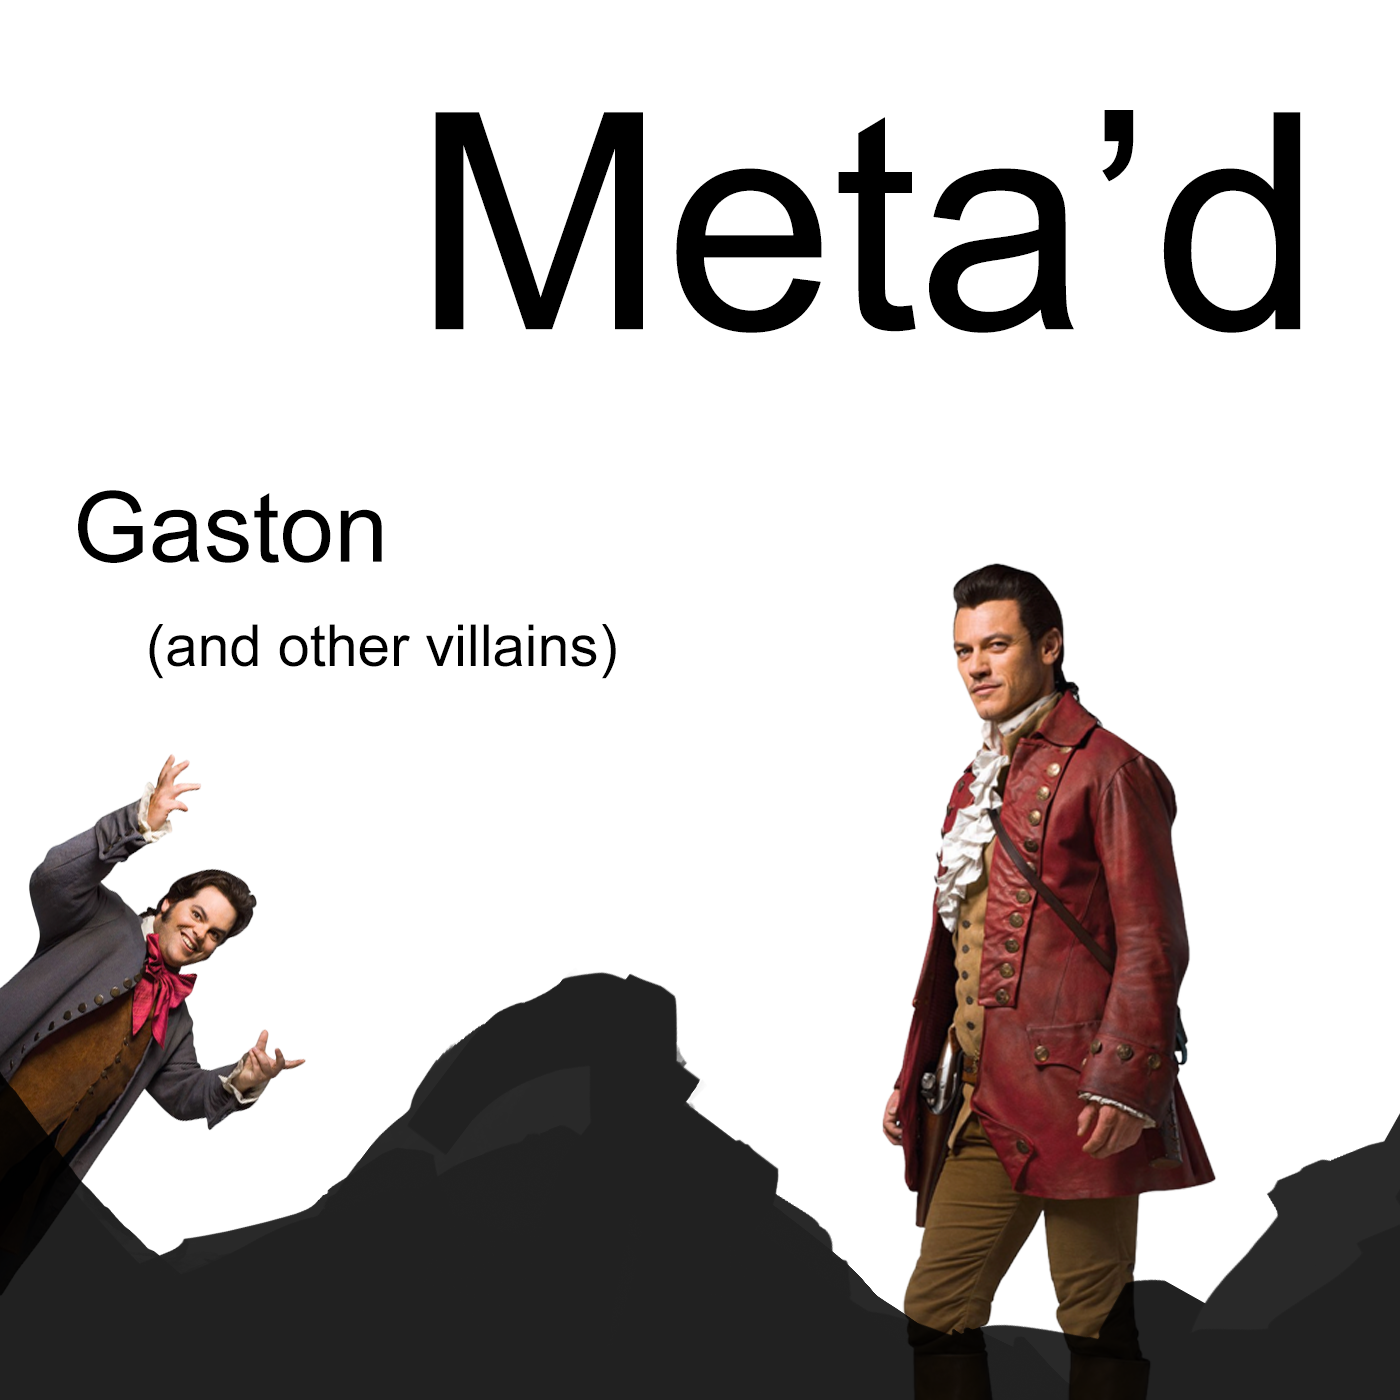 Gaston (and other villains)